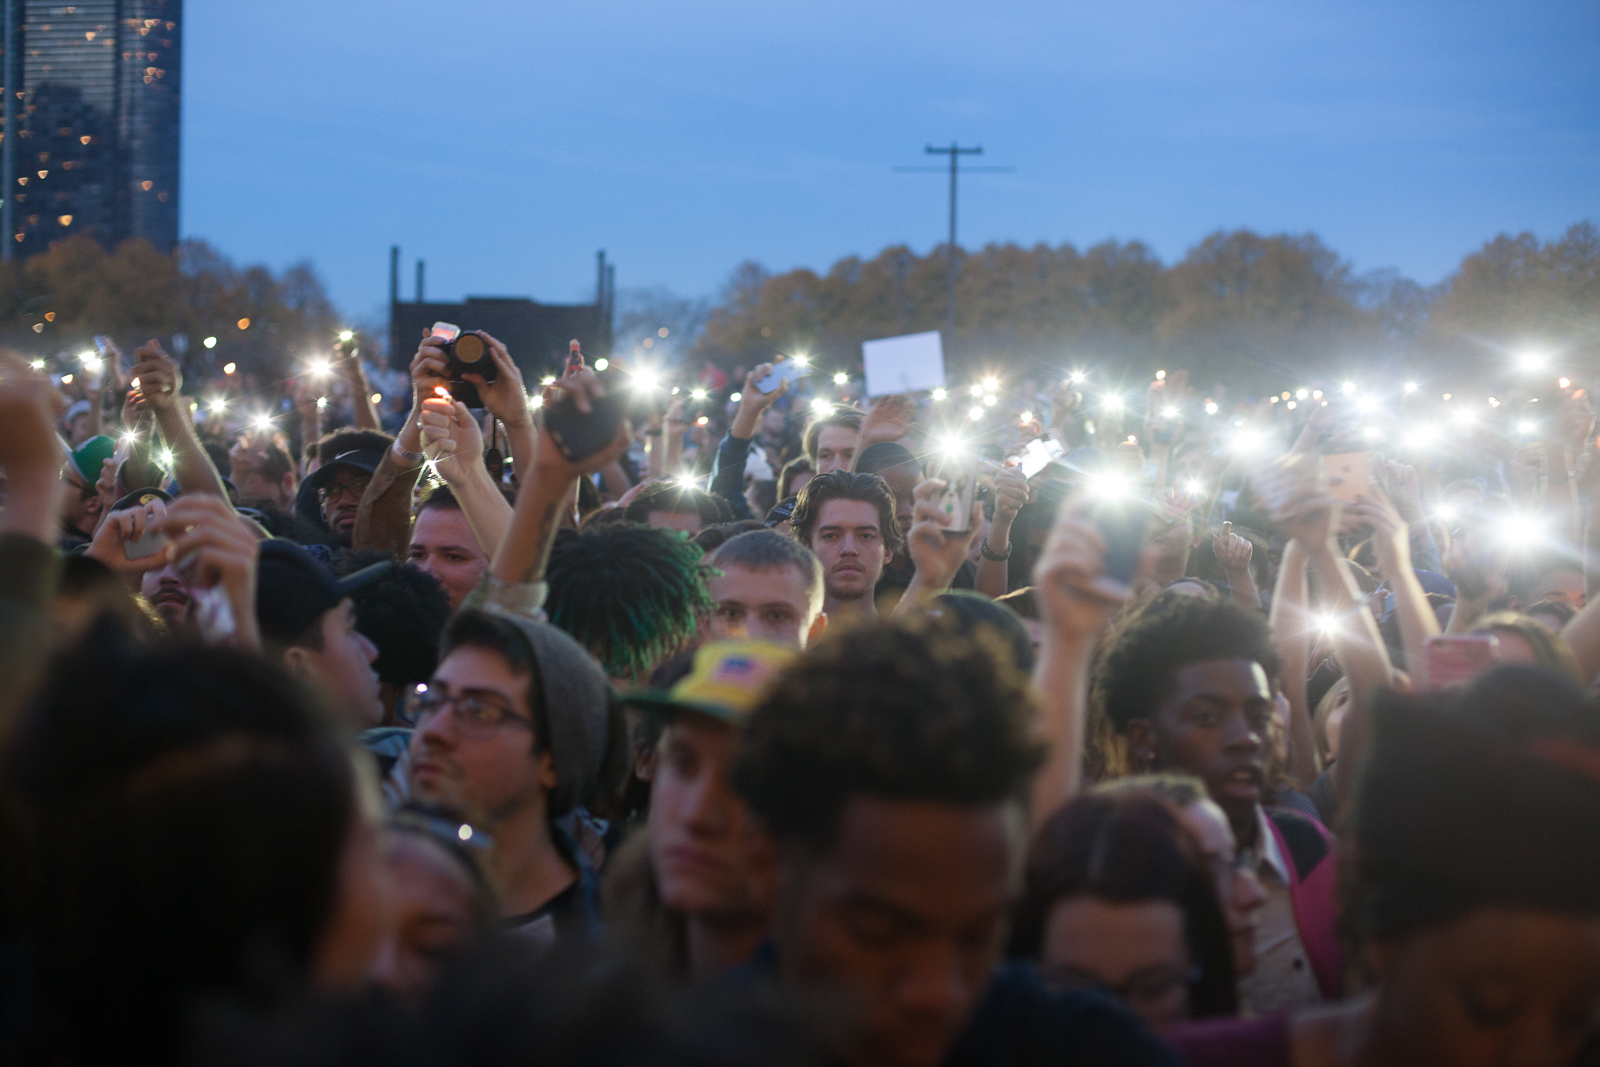 The crowd in Grant Park at dusk